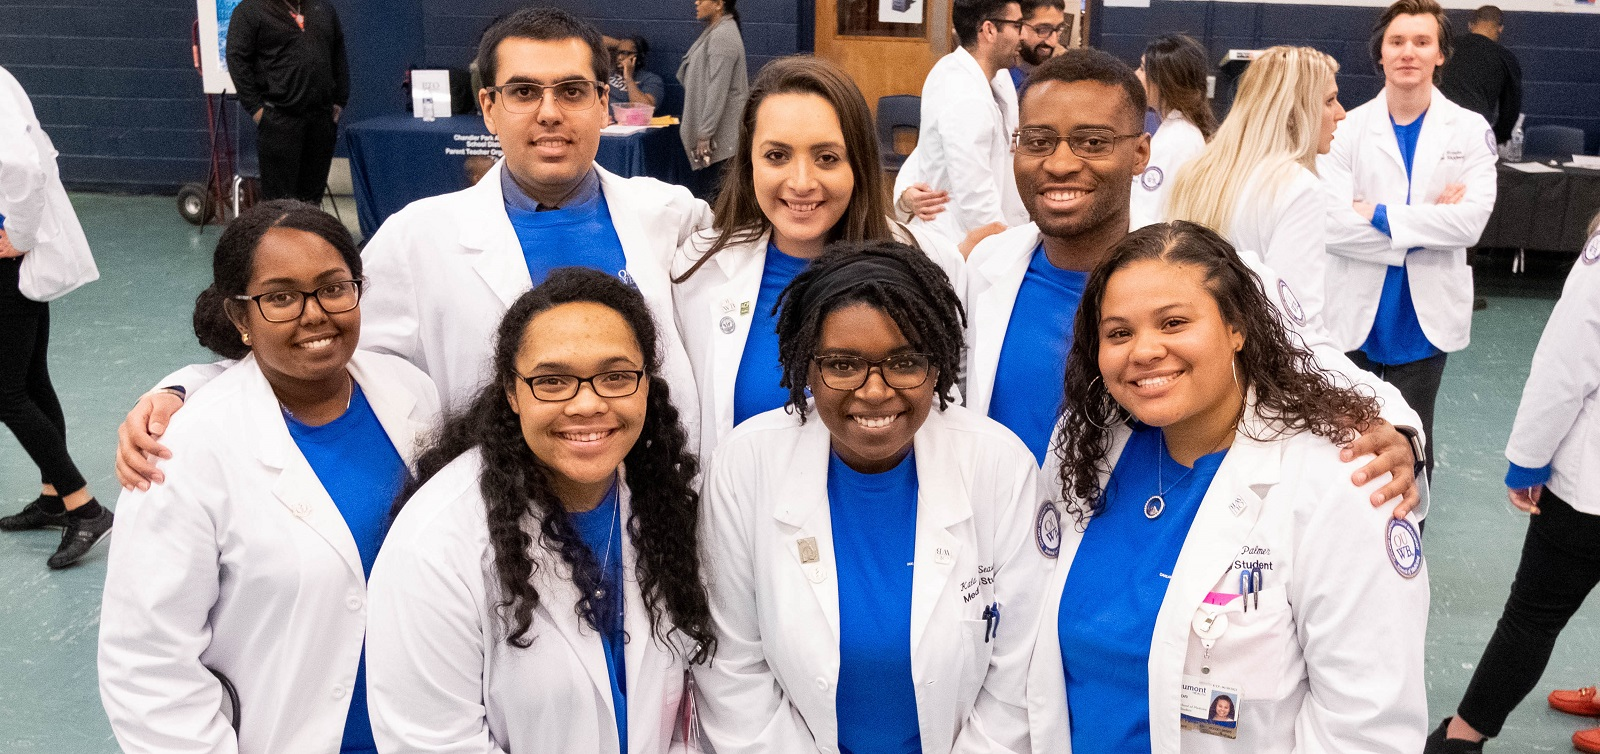 A group of med students wearing their white coats smiles in a group. They are volunteering at the annual Chandler Park Health Fair and Taste Test.